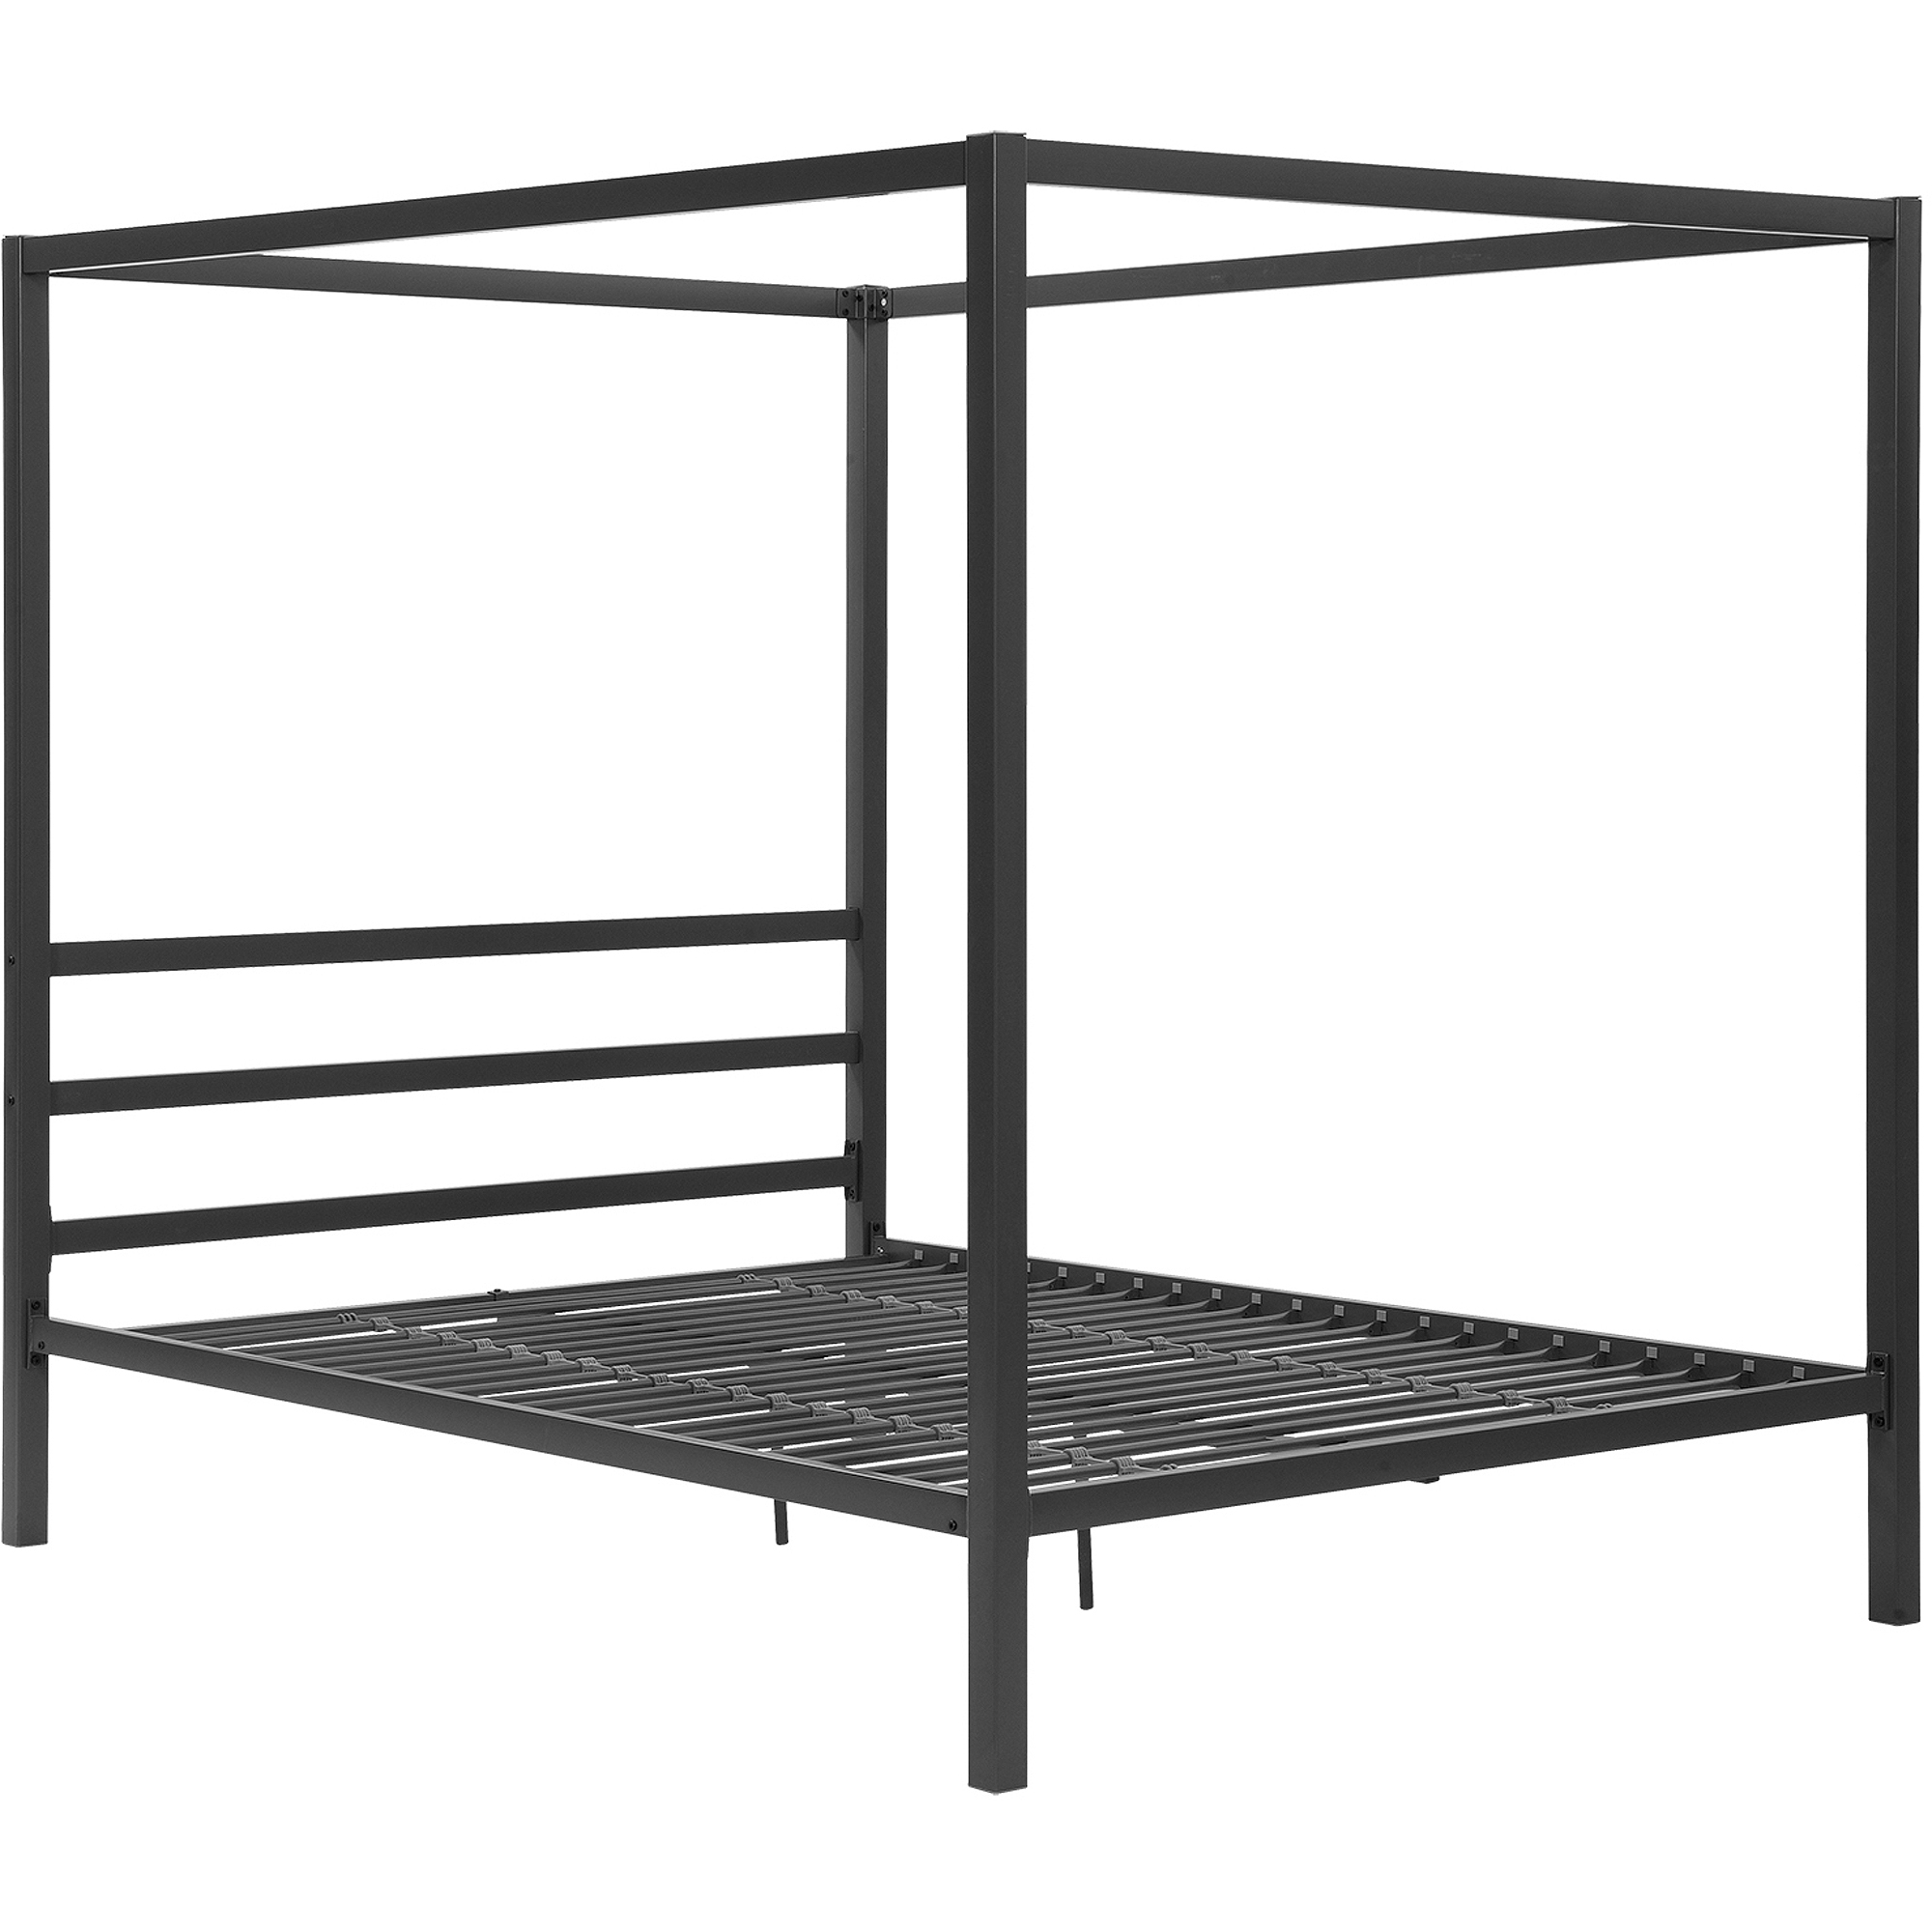 Canopy Bed Modern modern canopy queen metal bed, multiple colors - walmart